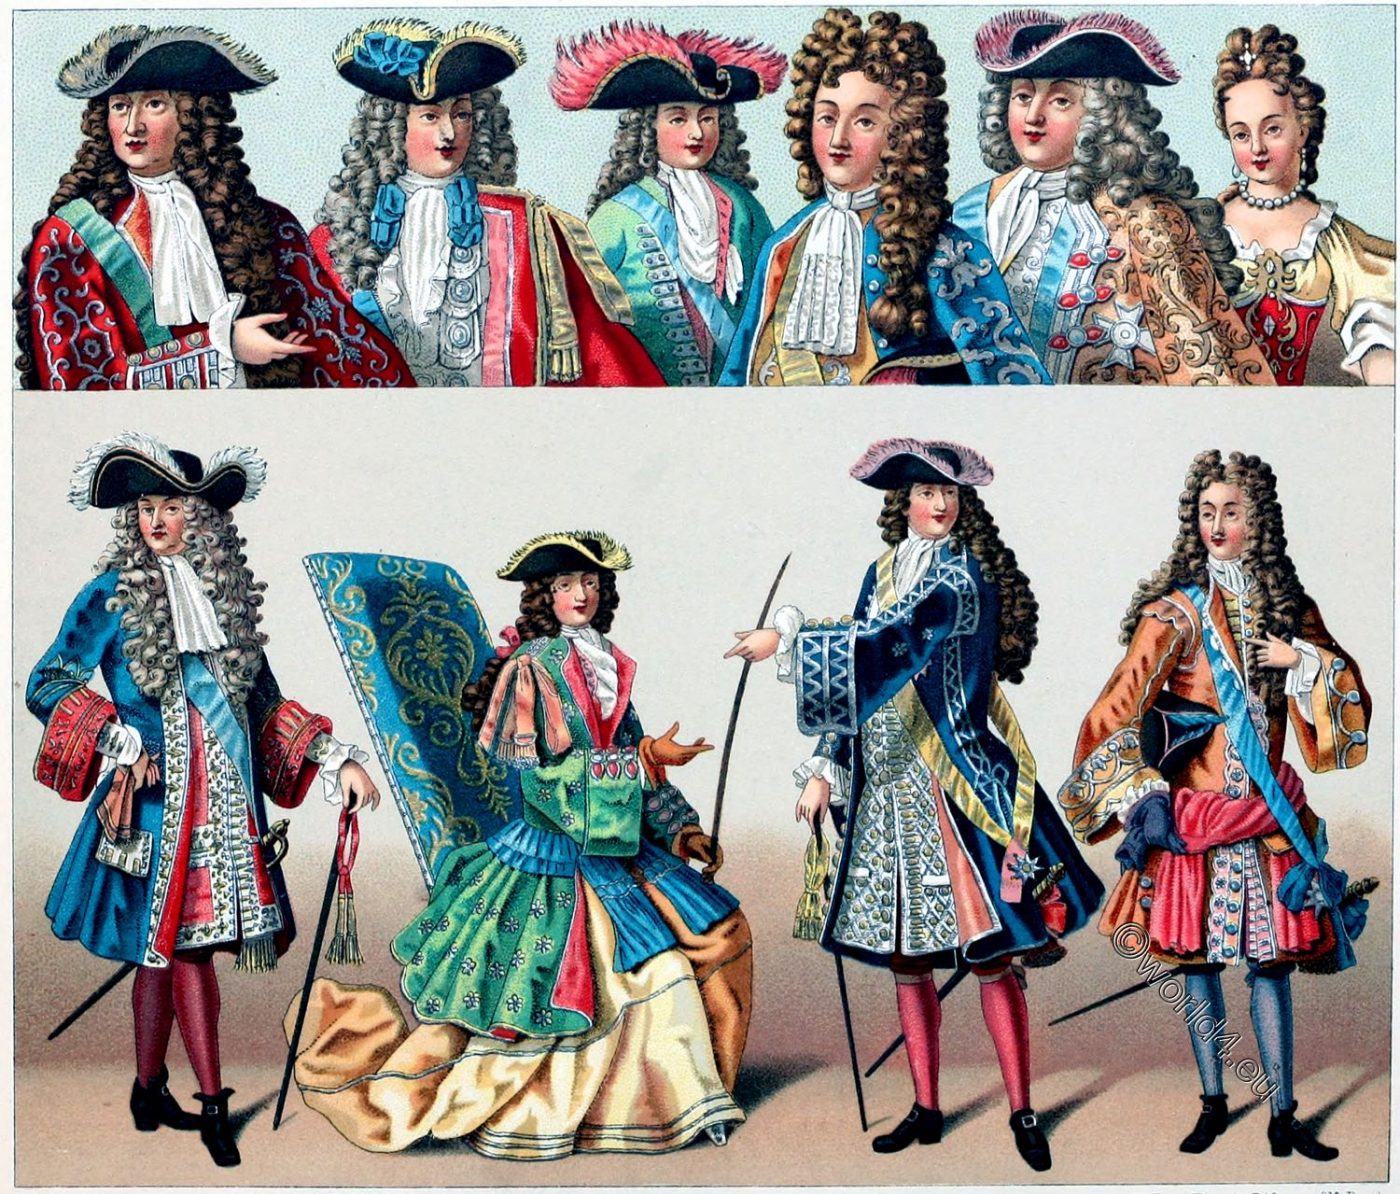 Louis XIV, Fashion, nobility, Versailles, Wigs, baroque, France, clothing, costumes